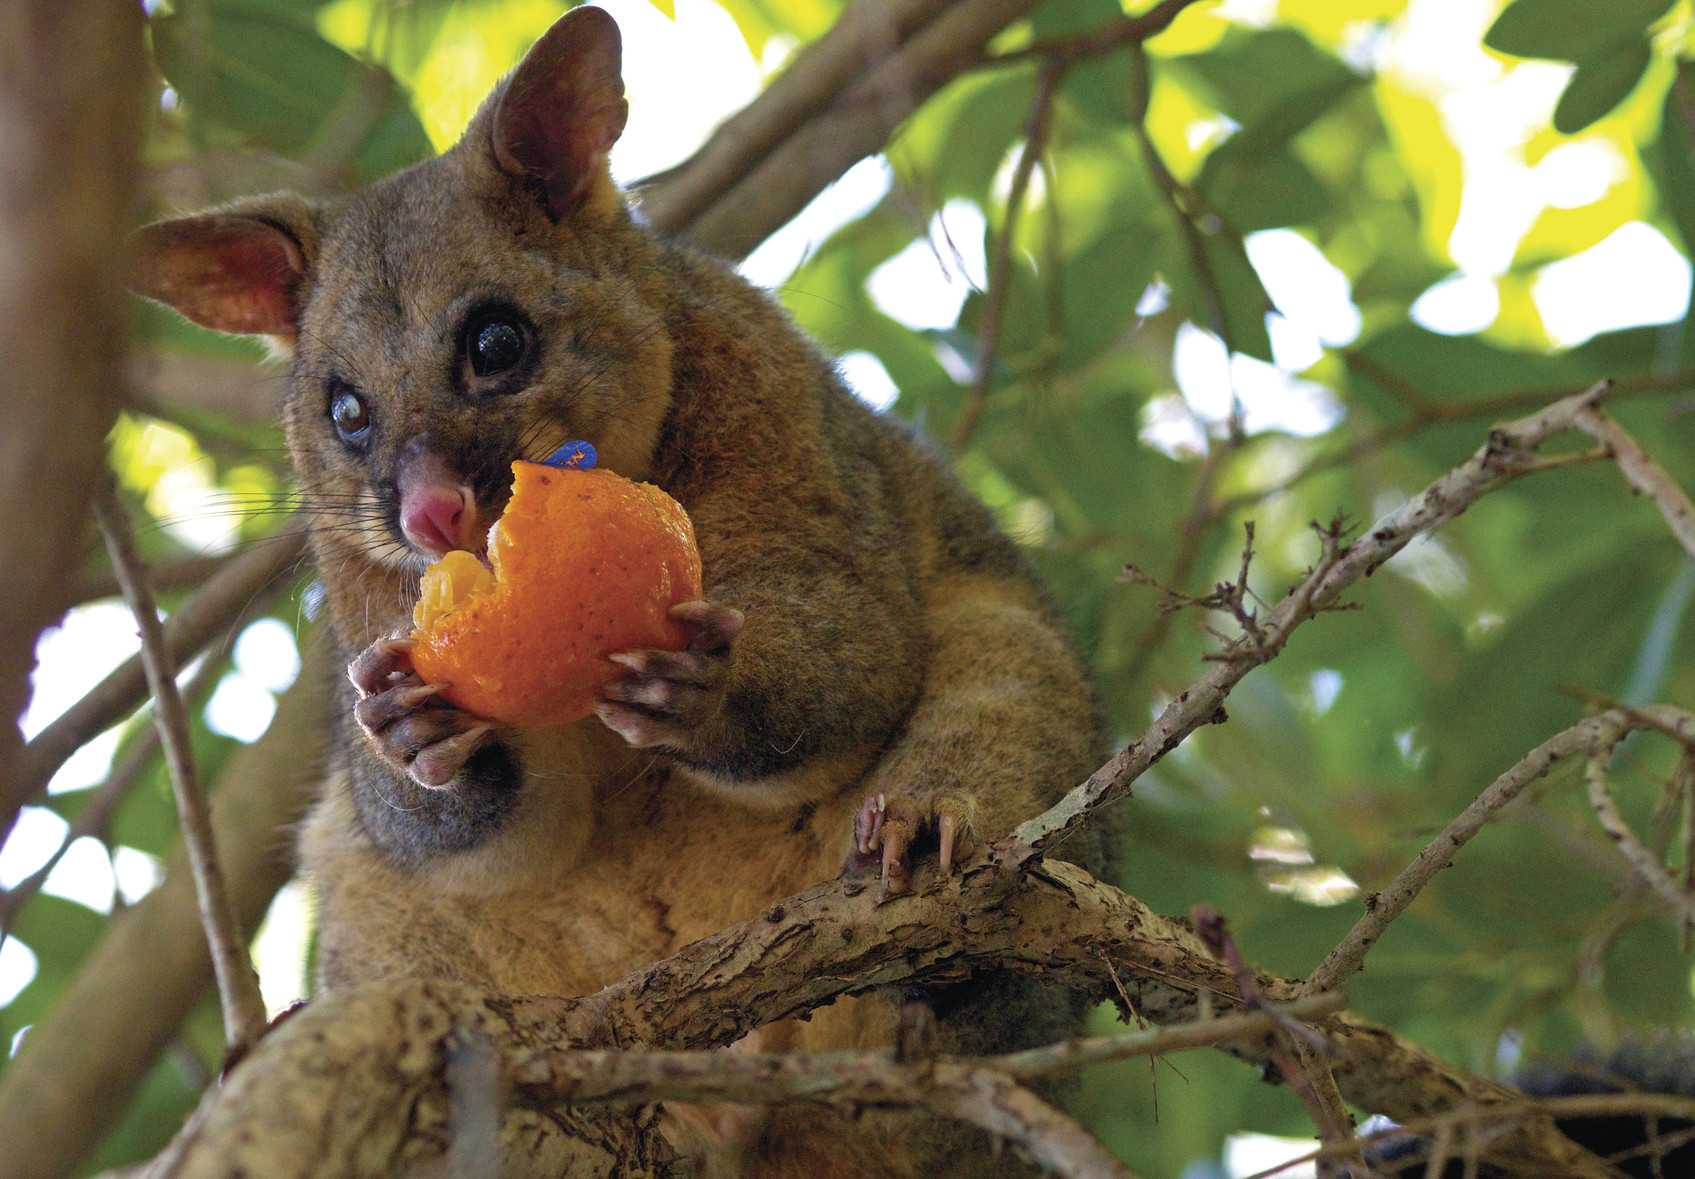 Brushtail possum eating fruit in a tree. Photo: Vanessa Duncan/OEH